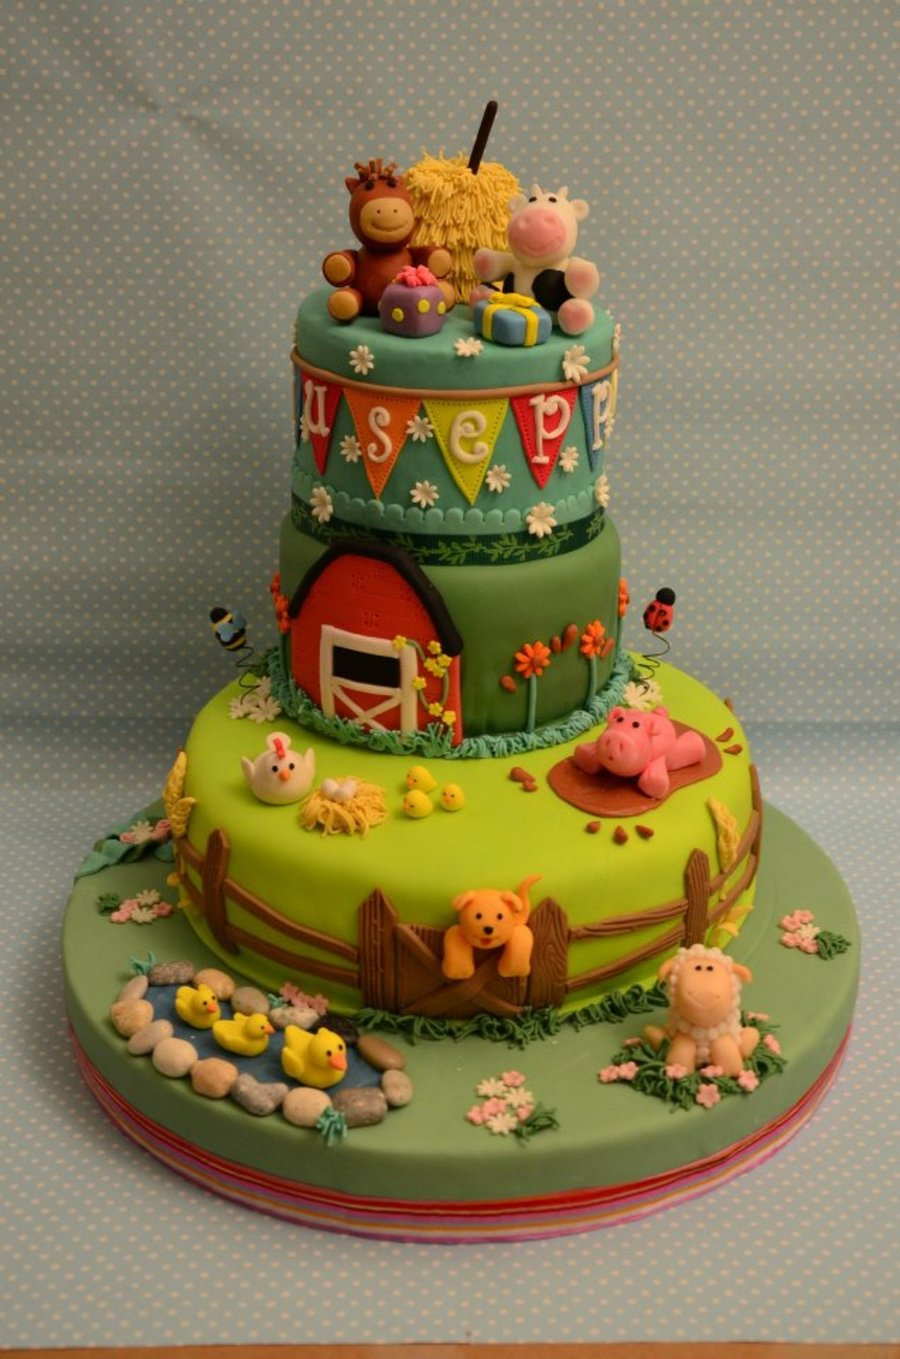 The Sweety Farm on Cake Central